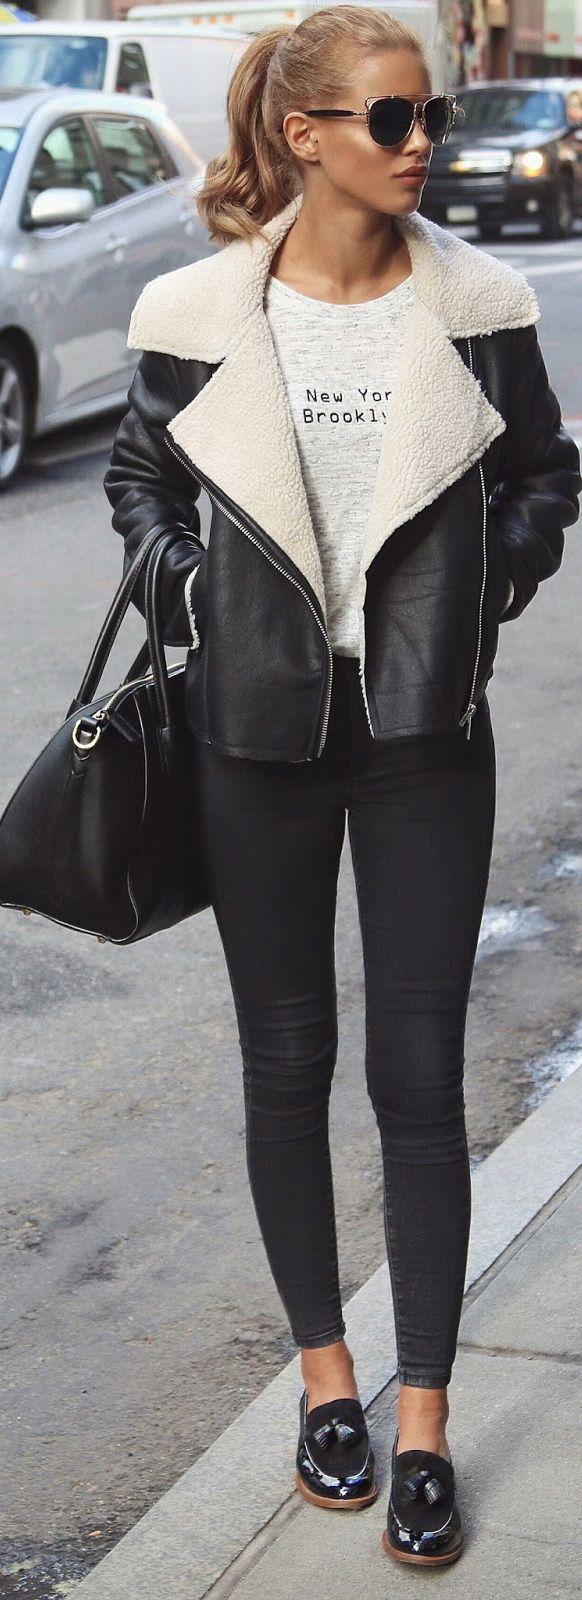 Trending stylish winter outfits outfits pinterest fashion